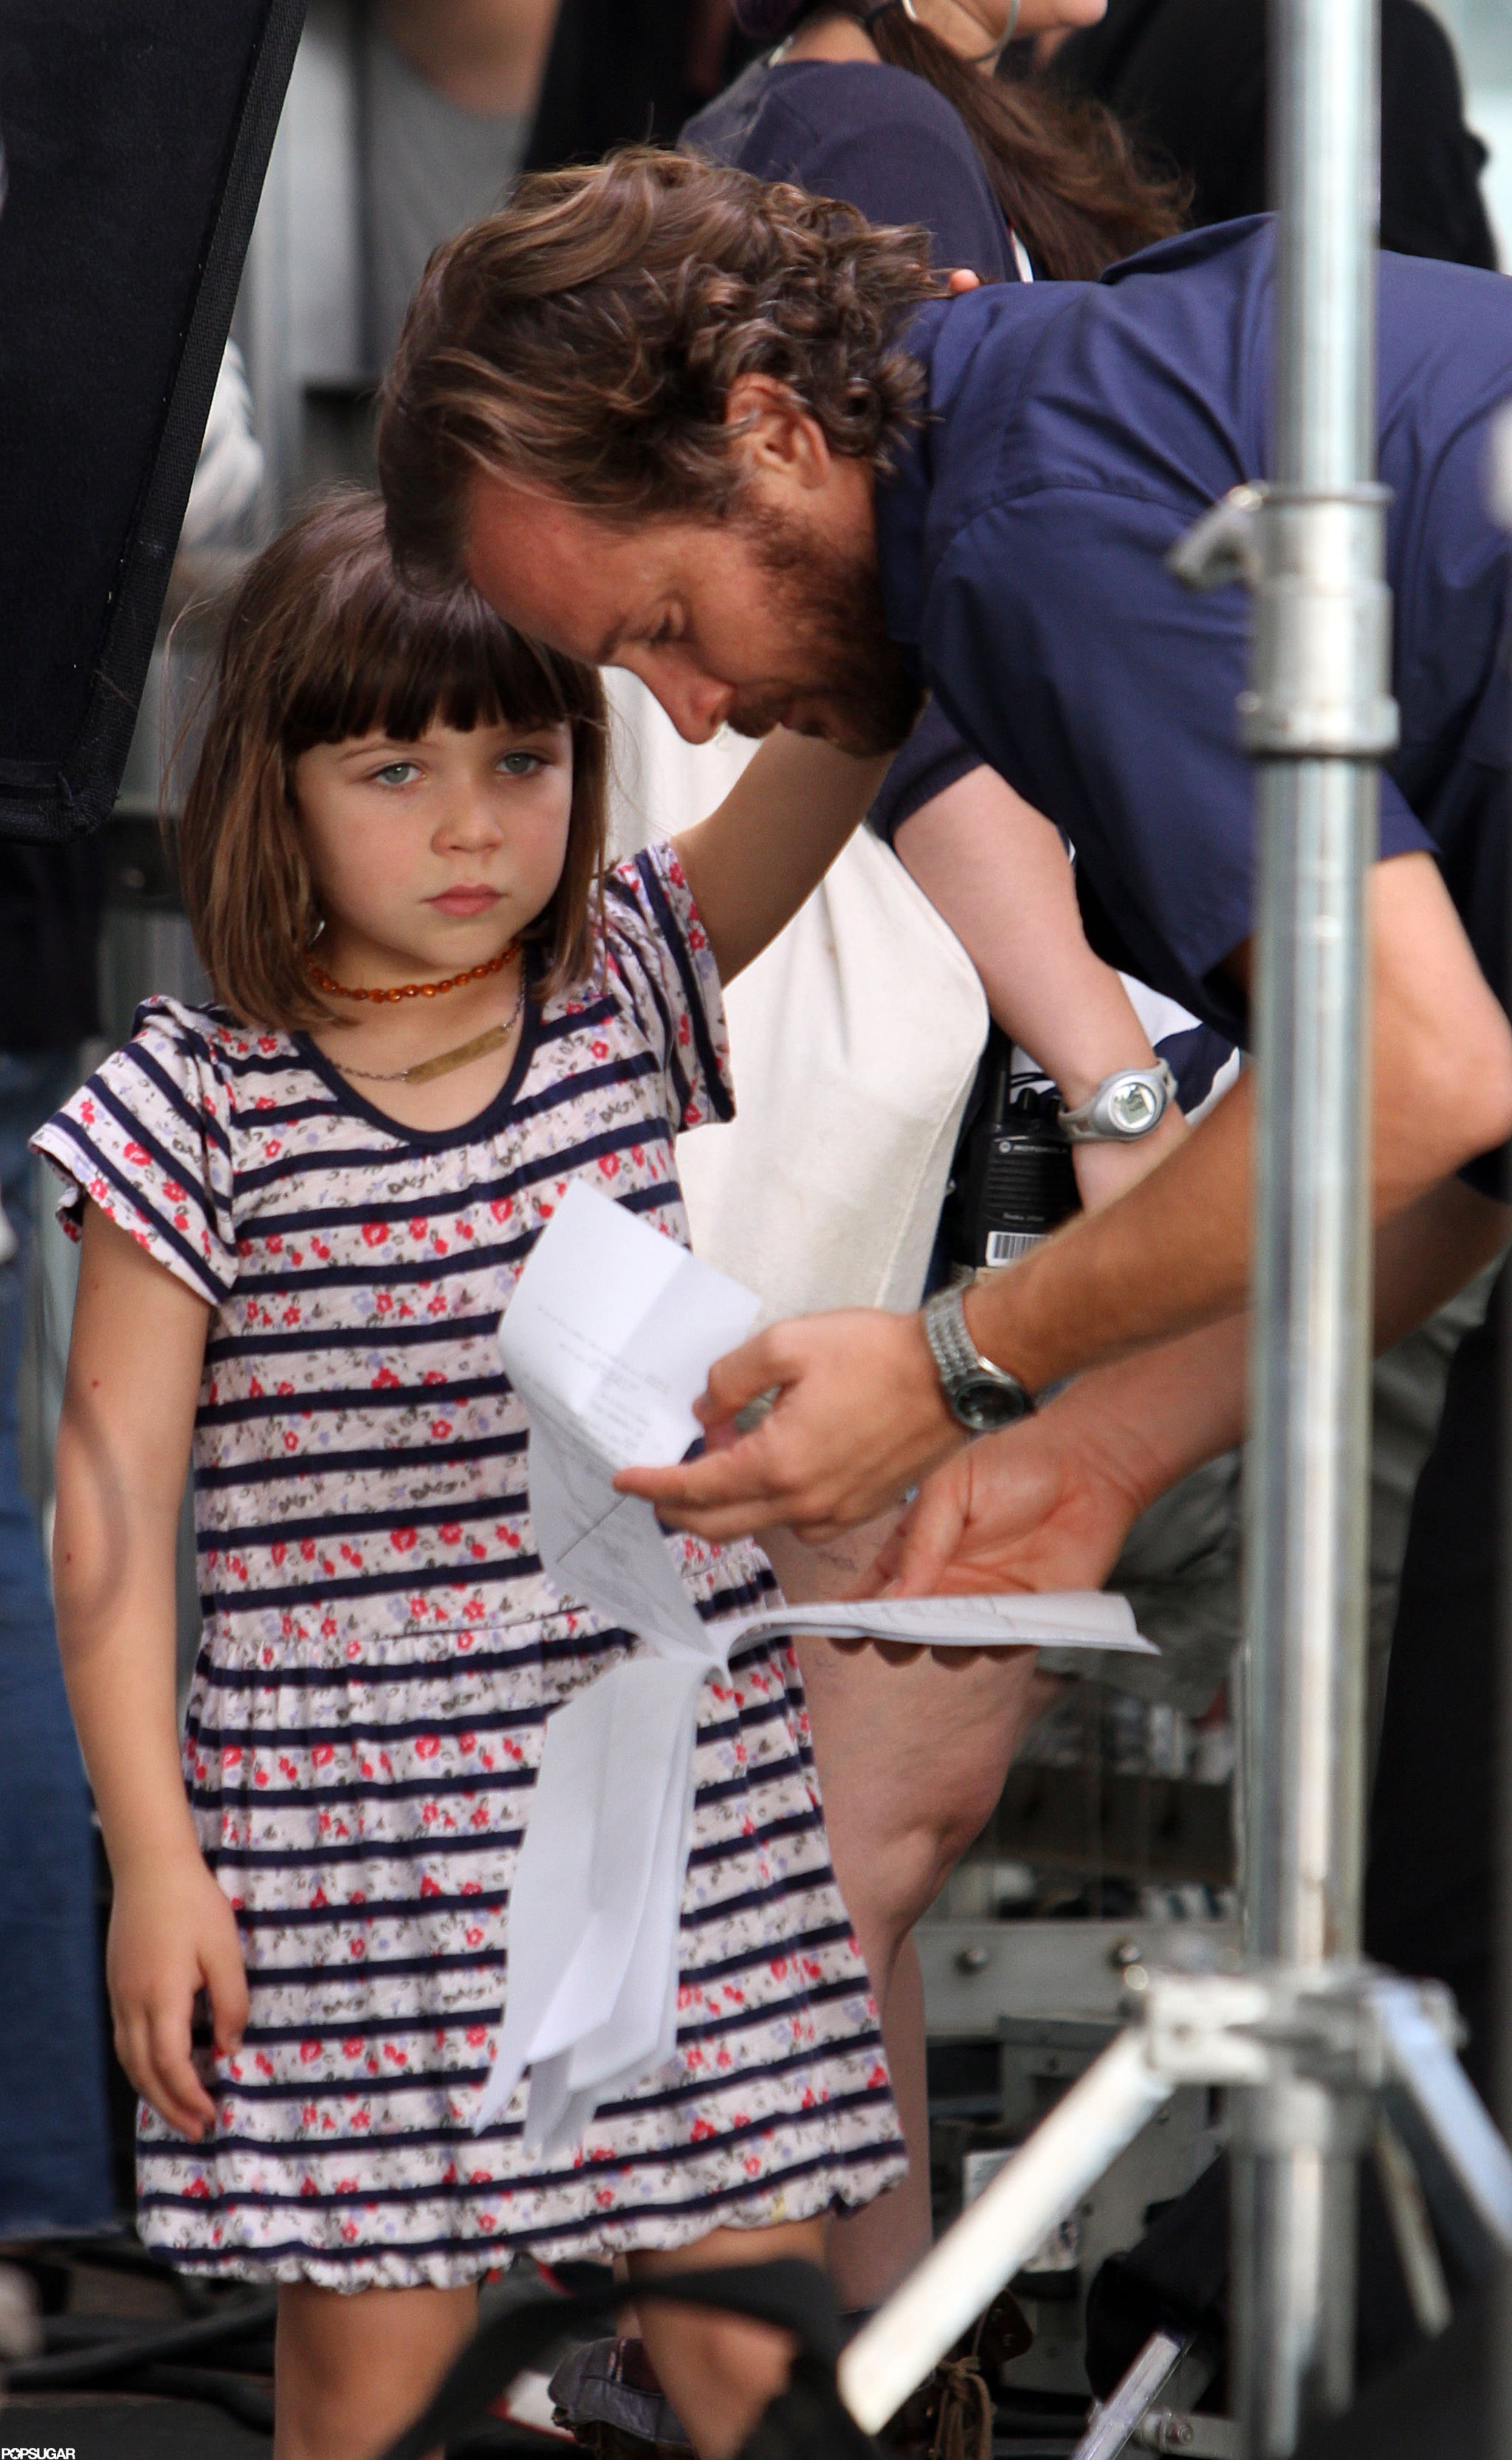 Dad Peter Sarsgaard spent time with Ramona on set in NYC.